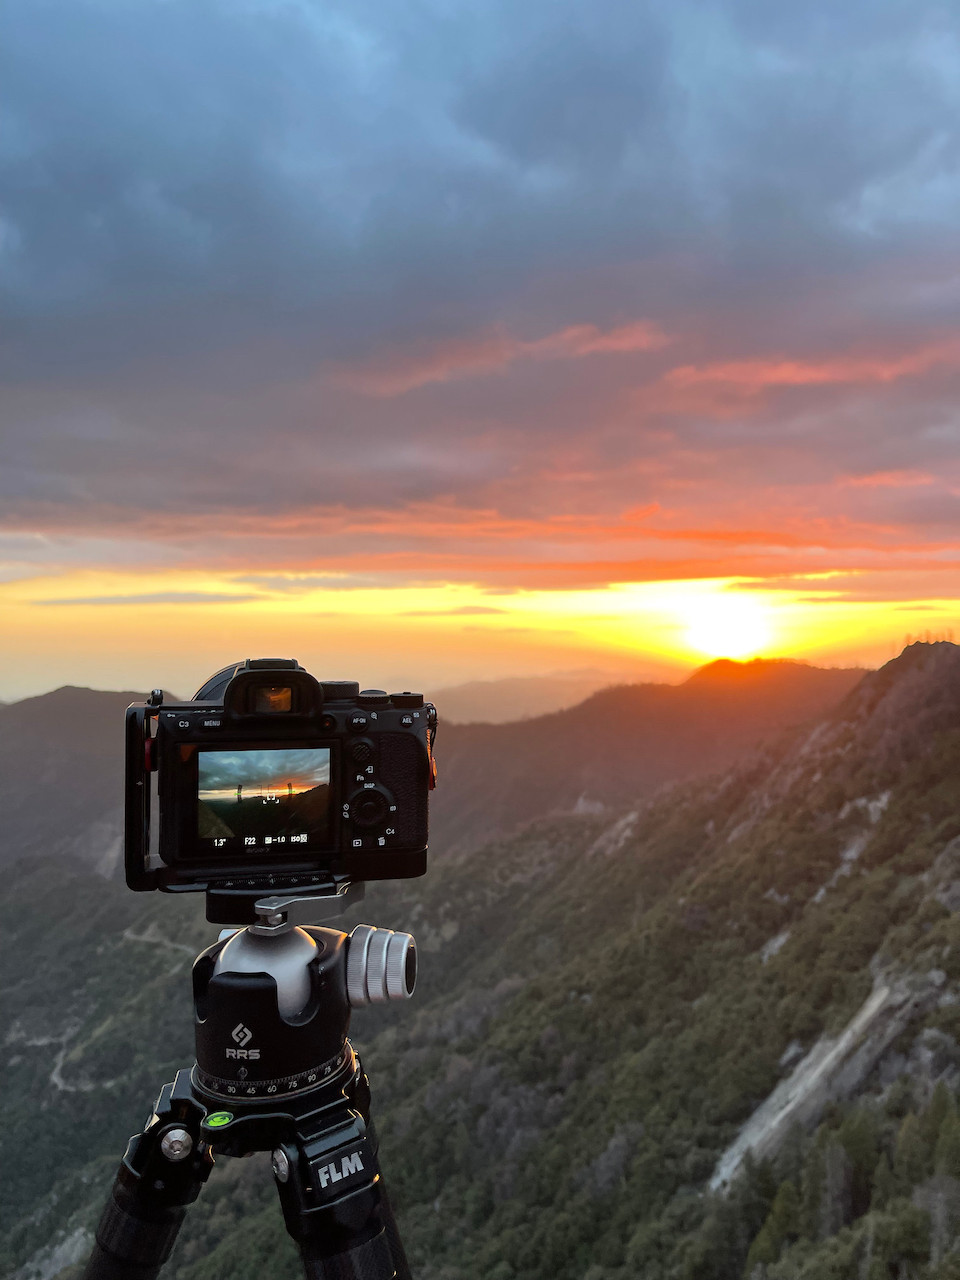 A striking sunset sends pinks and oranges bursting through the clouds. A camera is mounted on a tripod on top of a mountain side to capture this glory